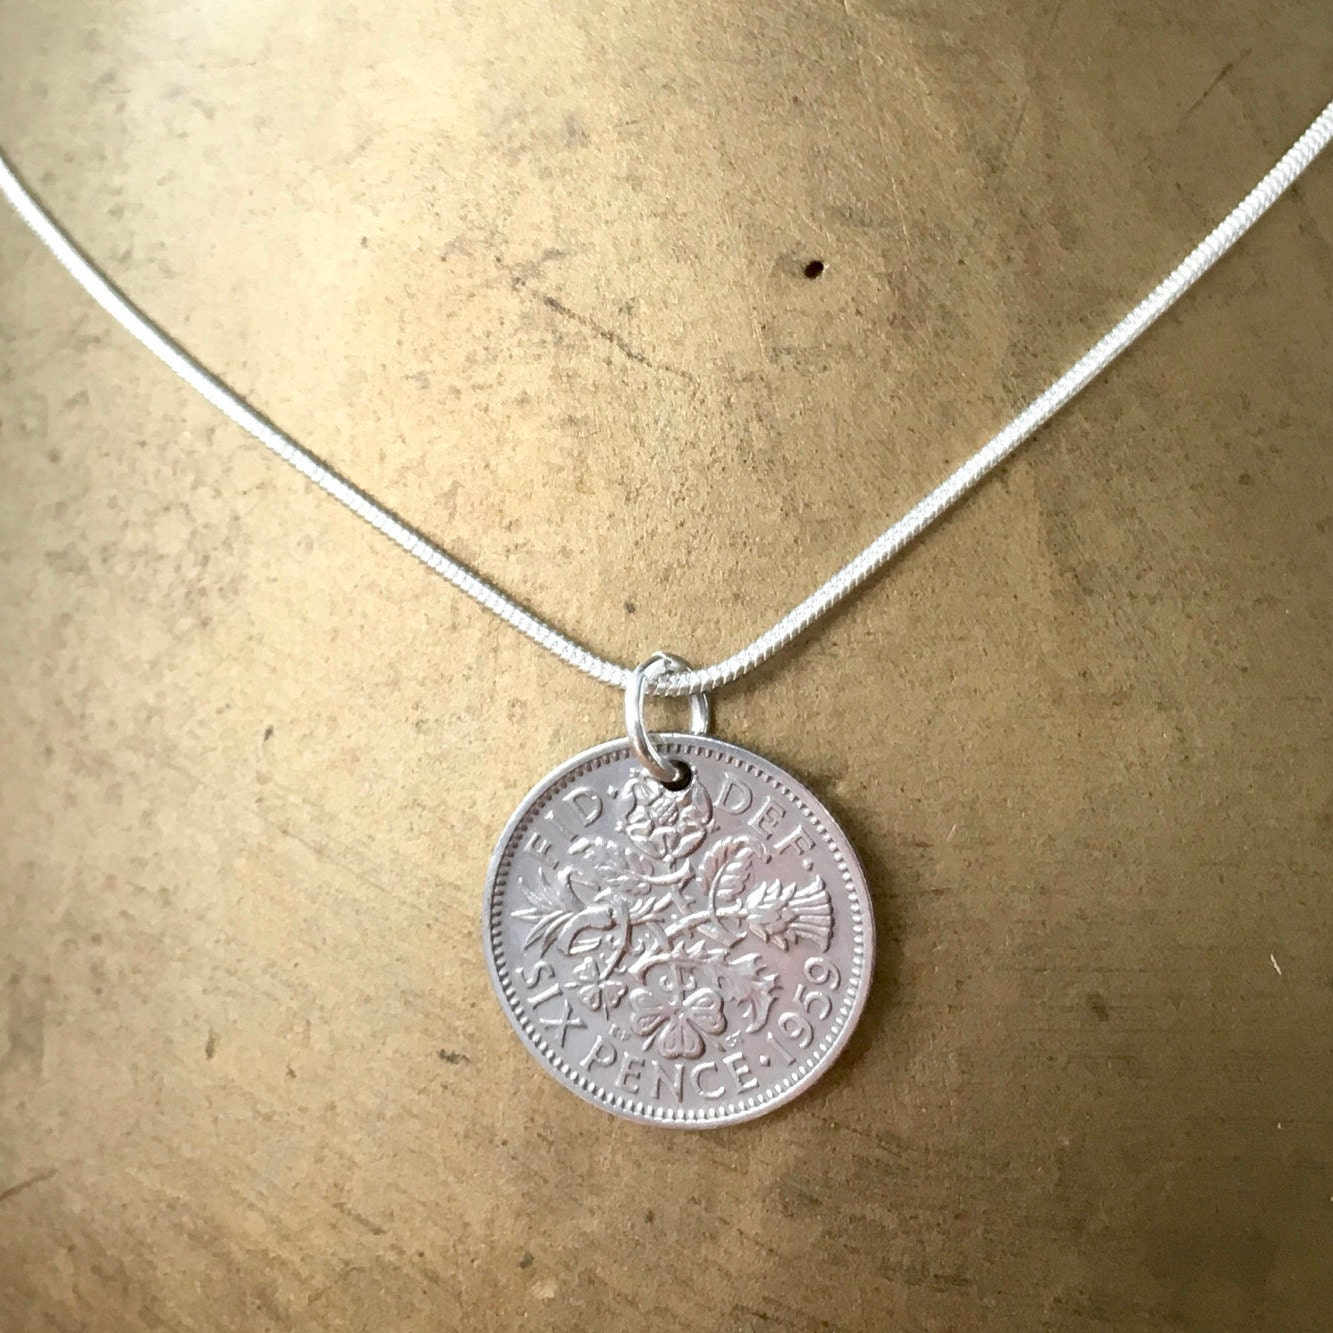 60th birthday gift, 1959 Lucky Sixpence necklace, British coin